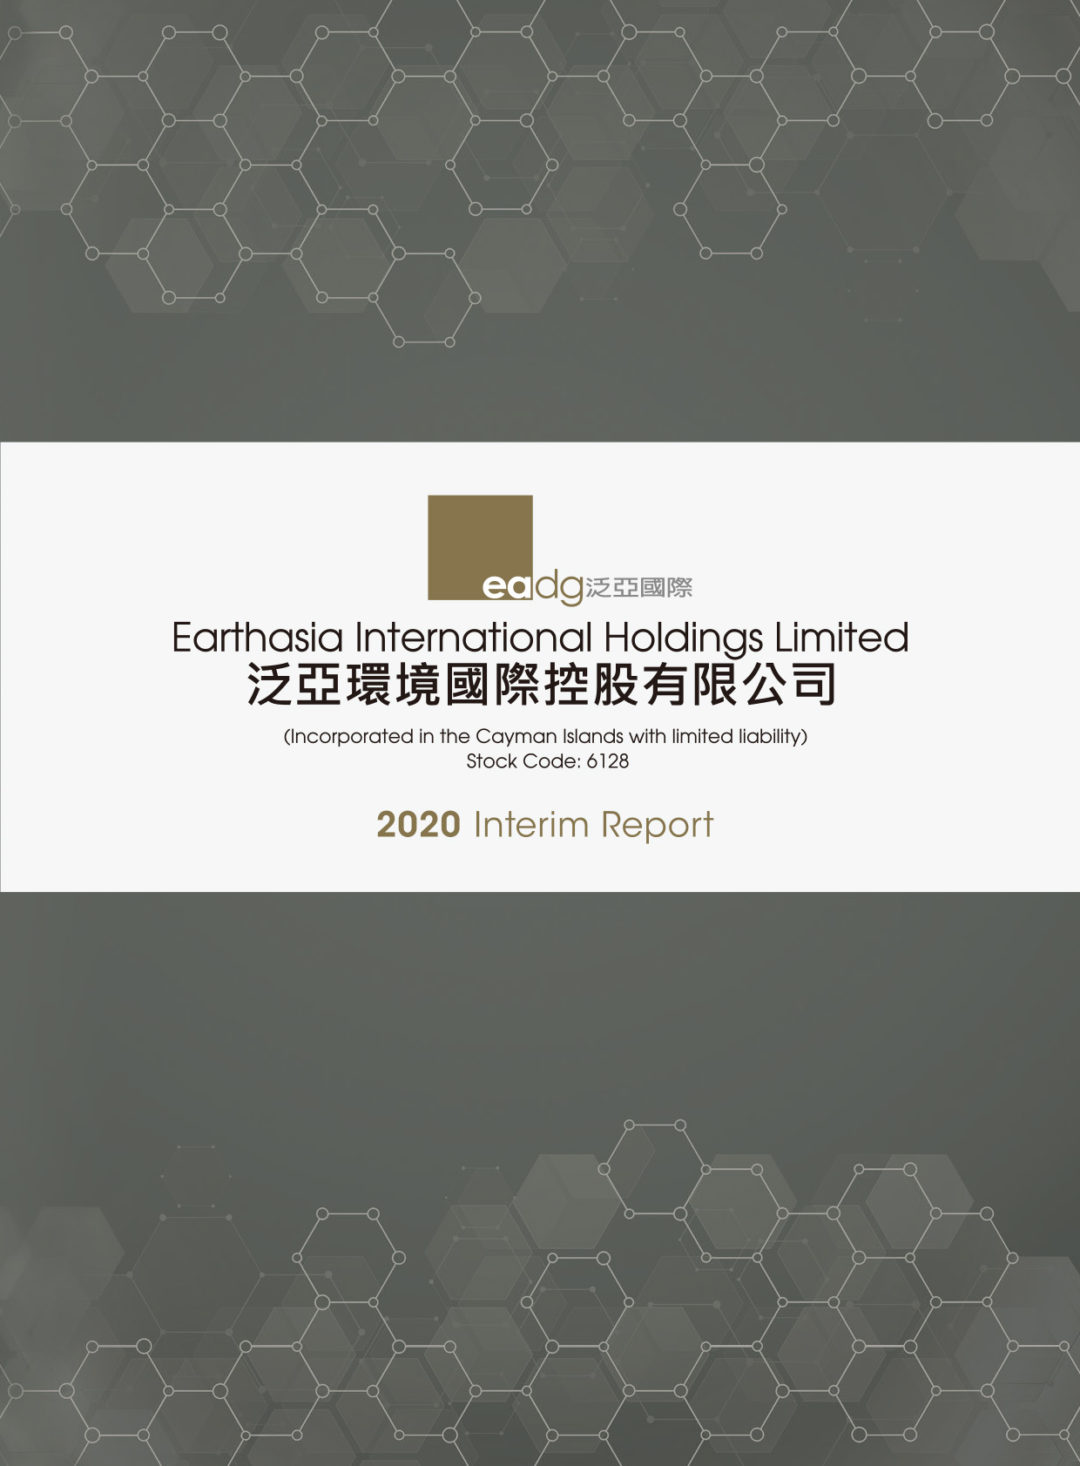 Earthasia International Holdings Limited